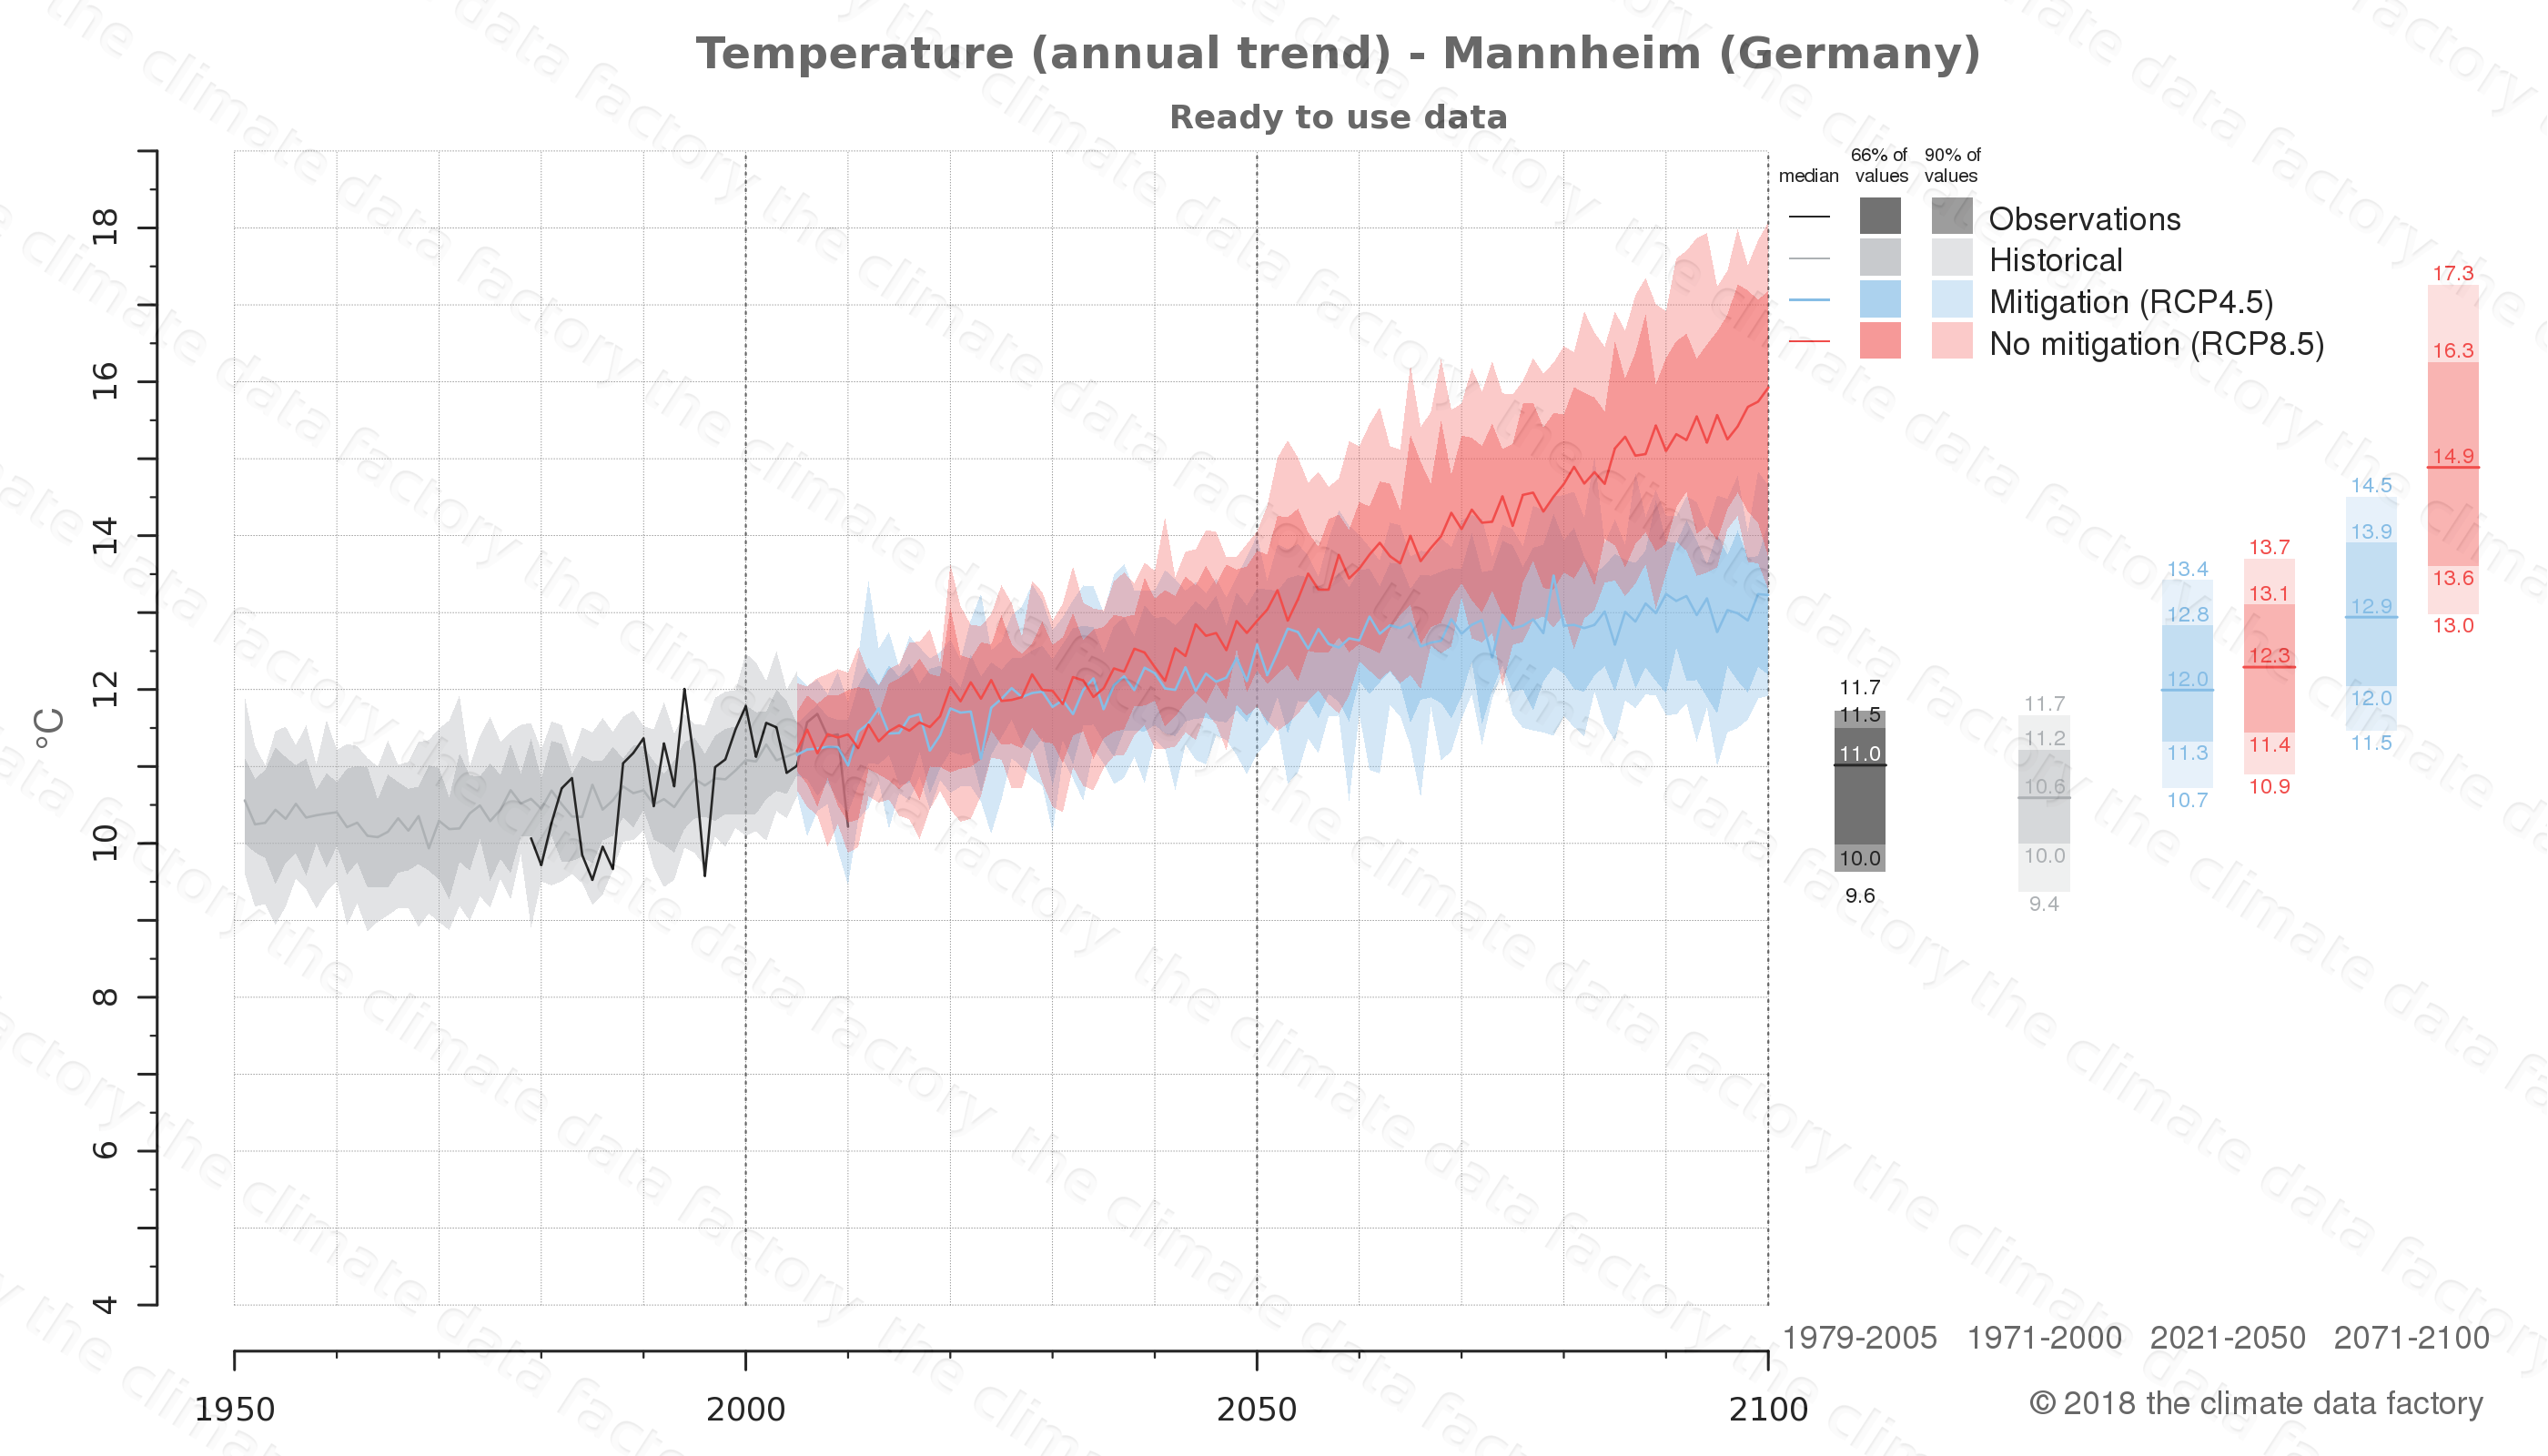 climate change data policy adaptation climate graph city data temperature mannheim germany